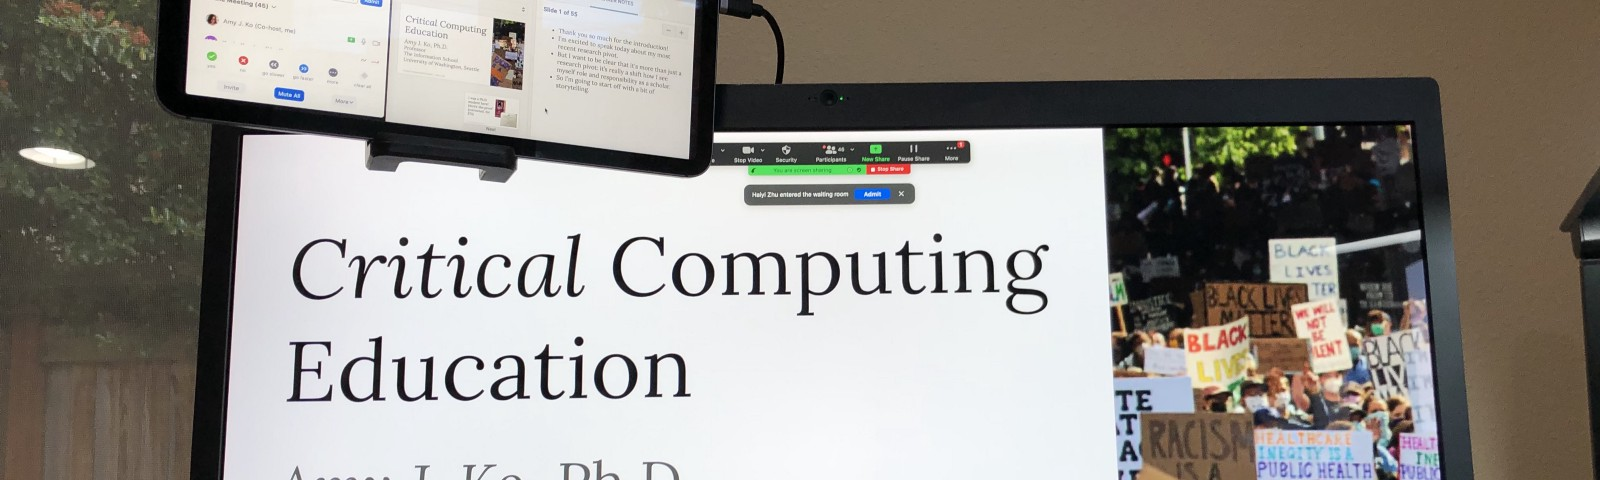 """A photograph of a display showing a slide titled """"Critical Computing Education"""", with an iPad hovering above showing Zoom."""